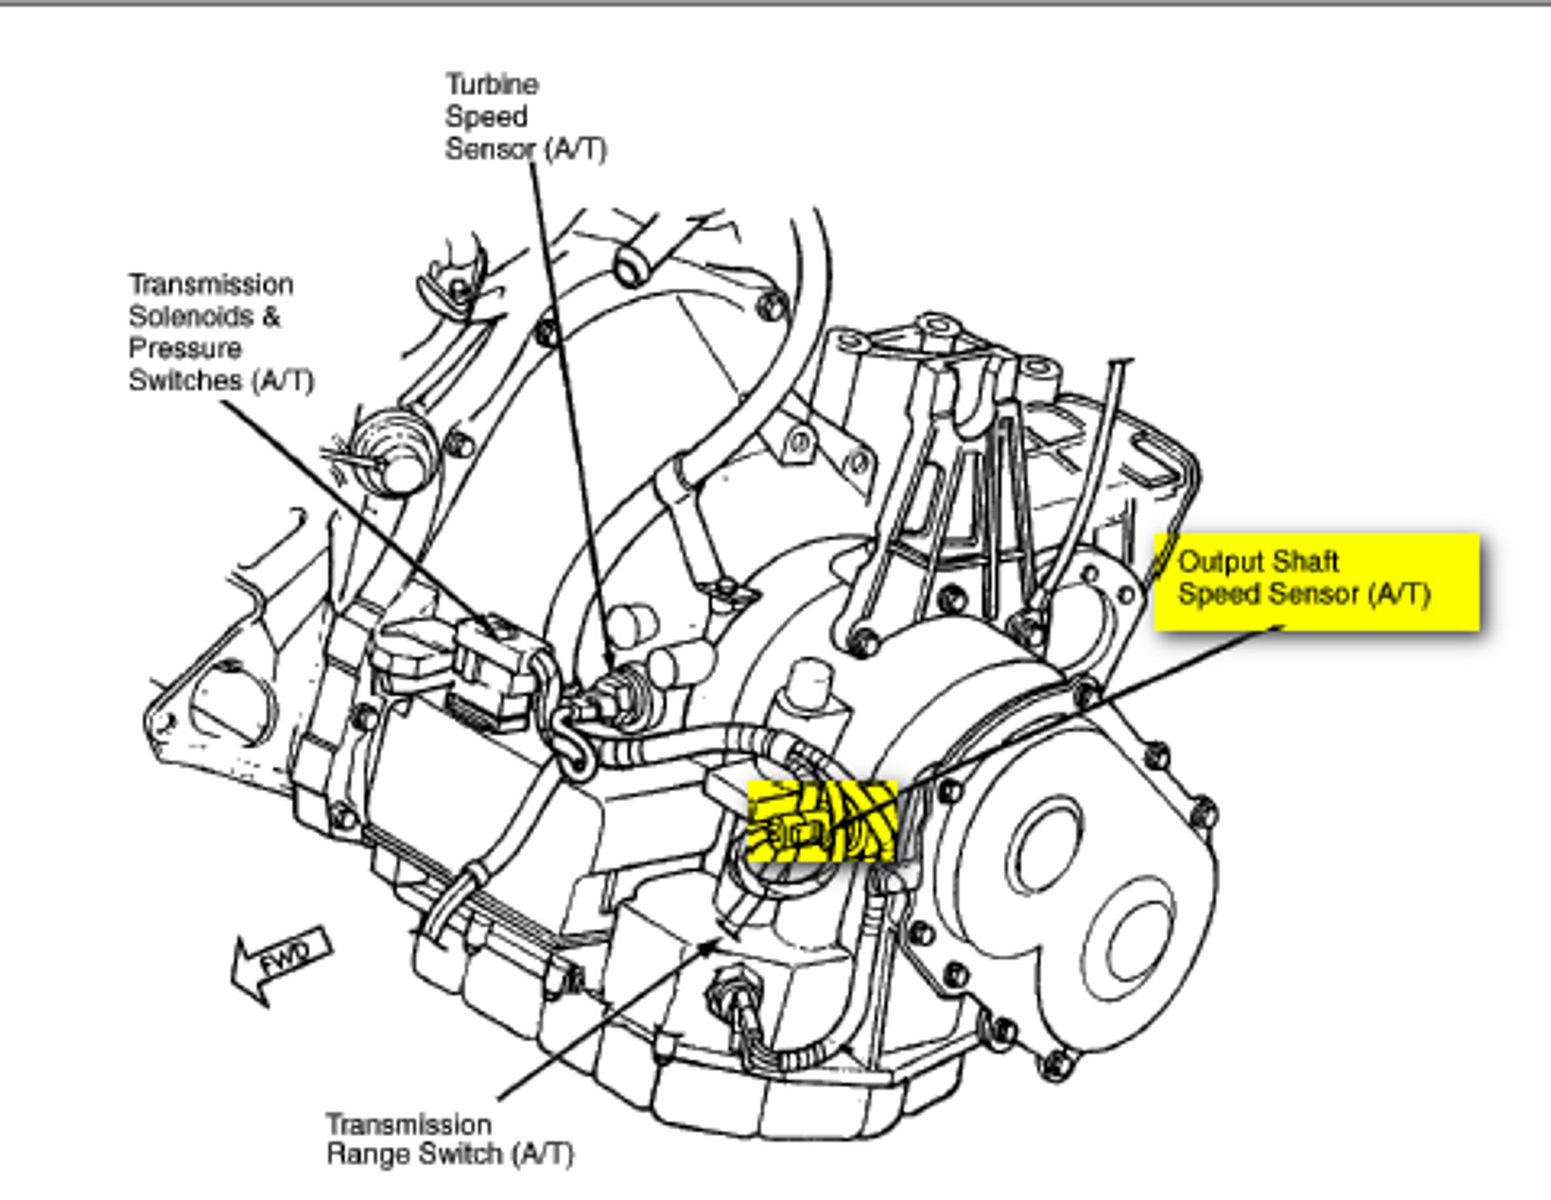 P0420 2006 nissan pathfinder together with 2007 2012 nissan versa air fuel oxygen sensor location moreover 1998 Nissan Sentra Intake Manifold Diagram Html furthermore 25u4e Need Know Location Fuel Pump Relay 03 Sentra in addition Engine Control Vacuum Piping. on 2006 nissan altima se